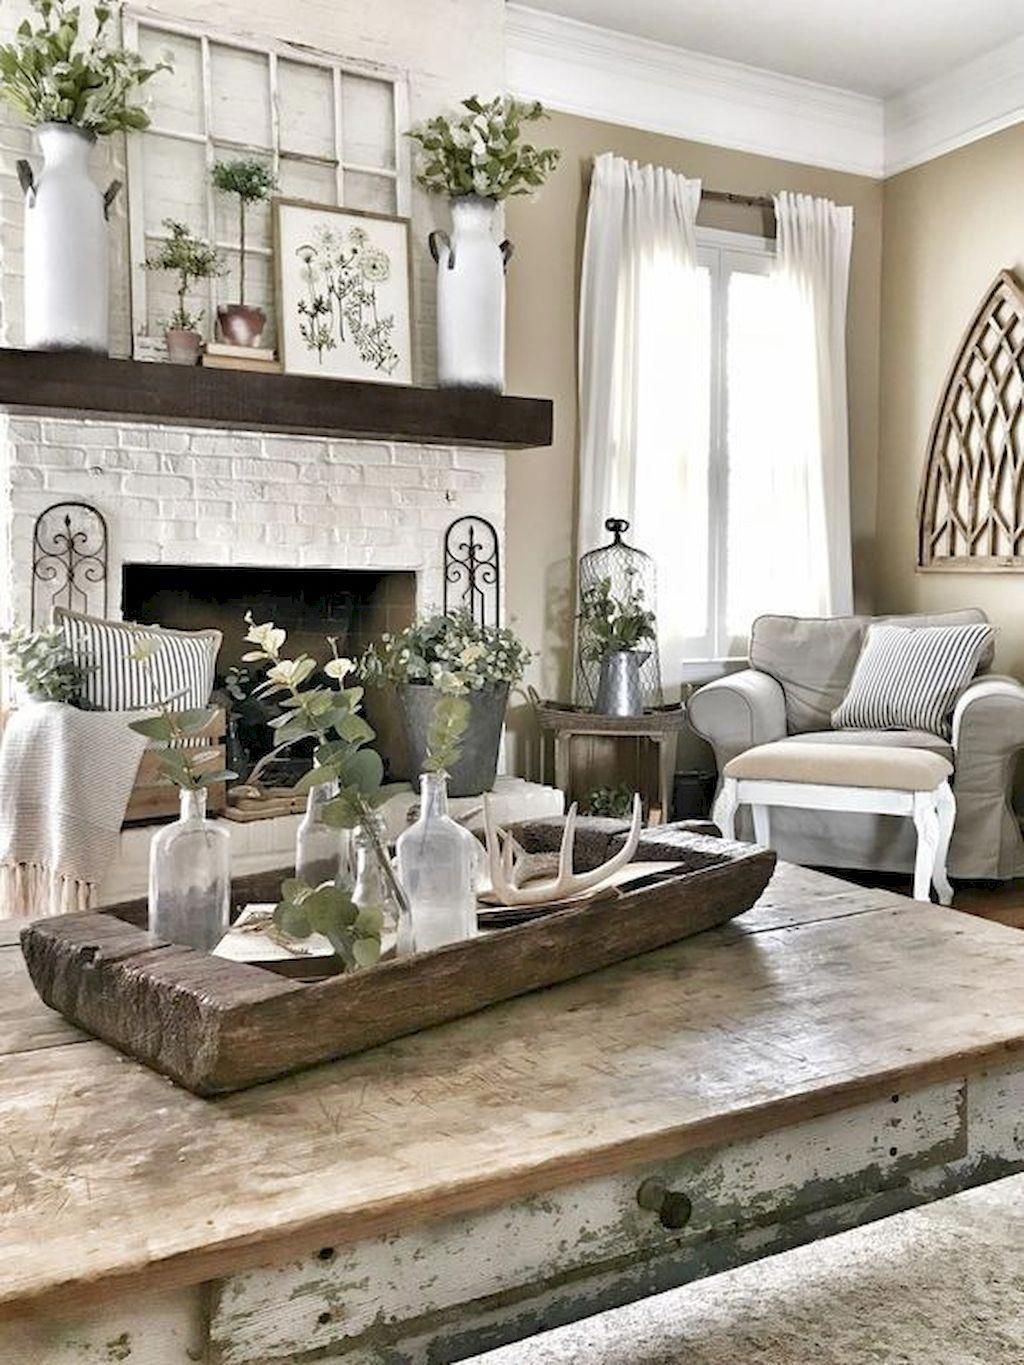 Awesome Rustic Furniture Ideas For Living Room Decor 07